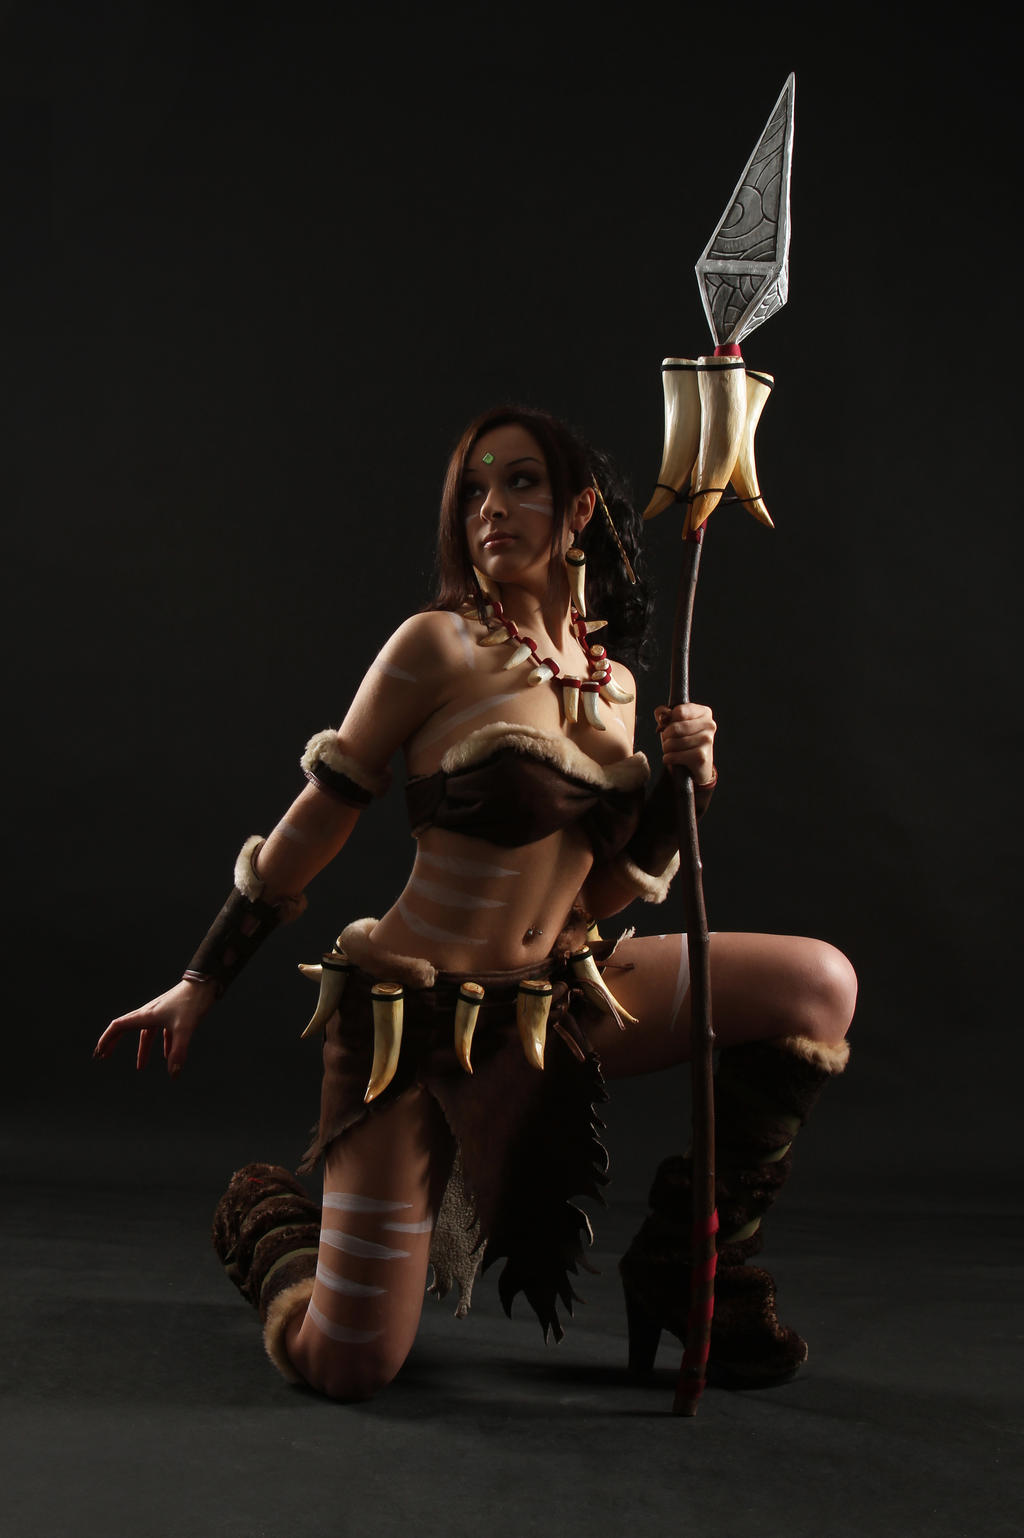 Nidalee cosplay 2 by IssabelCosplay